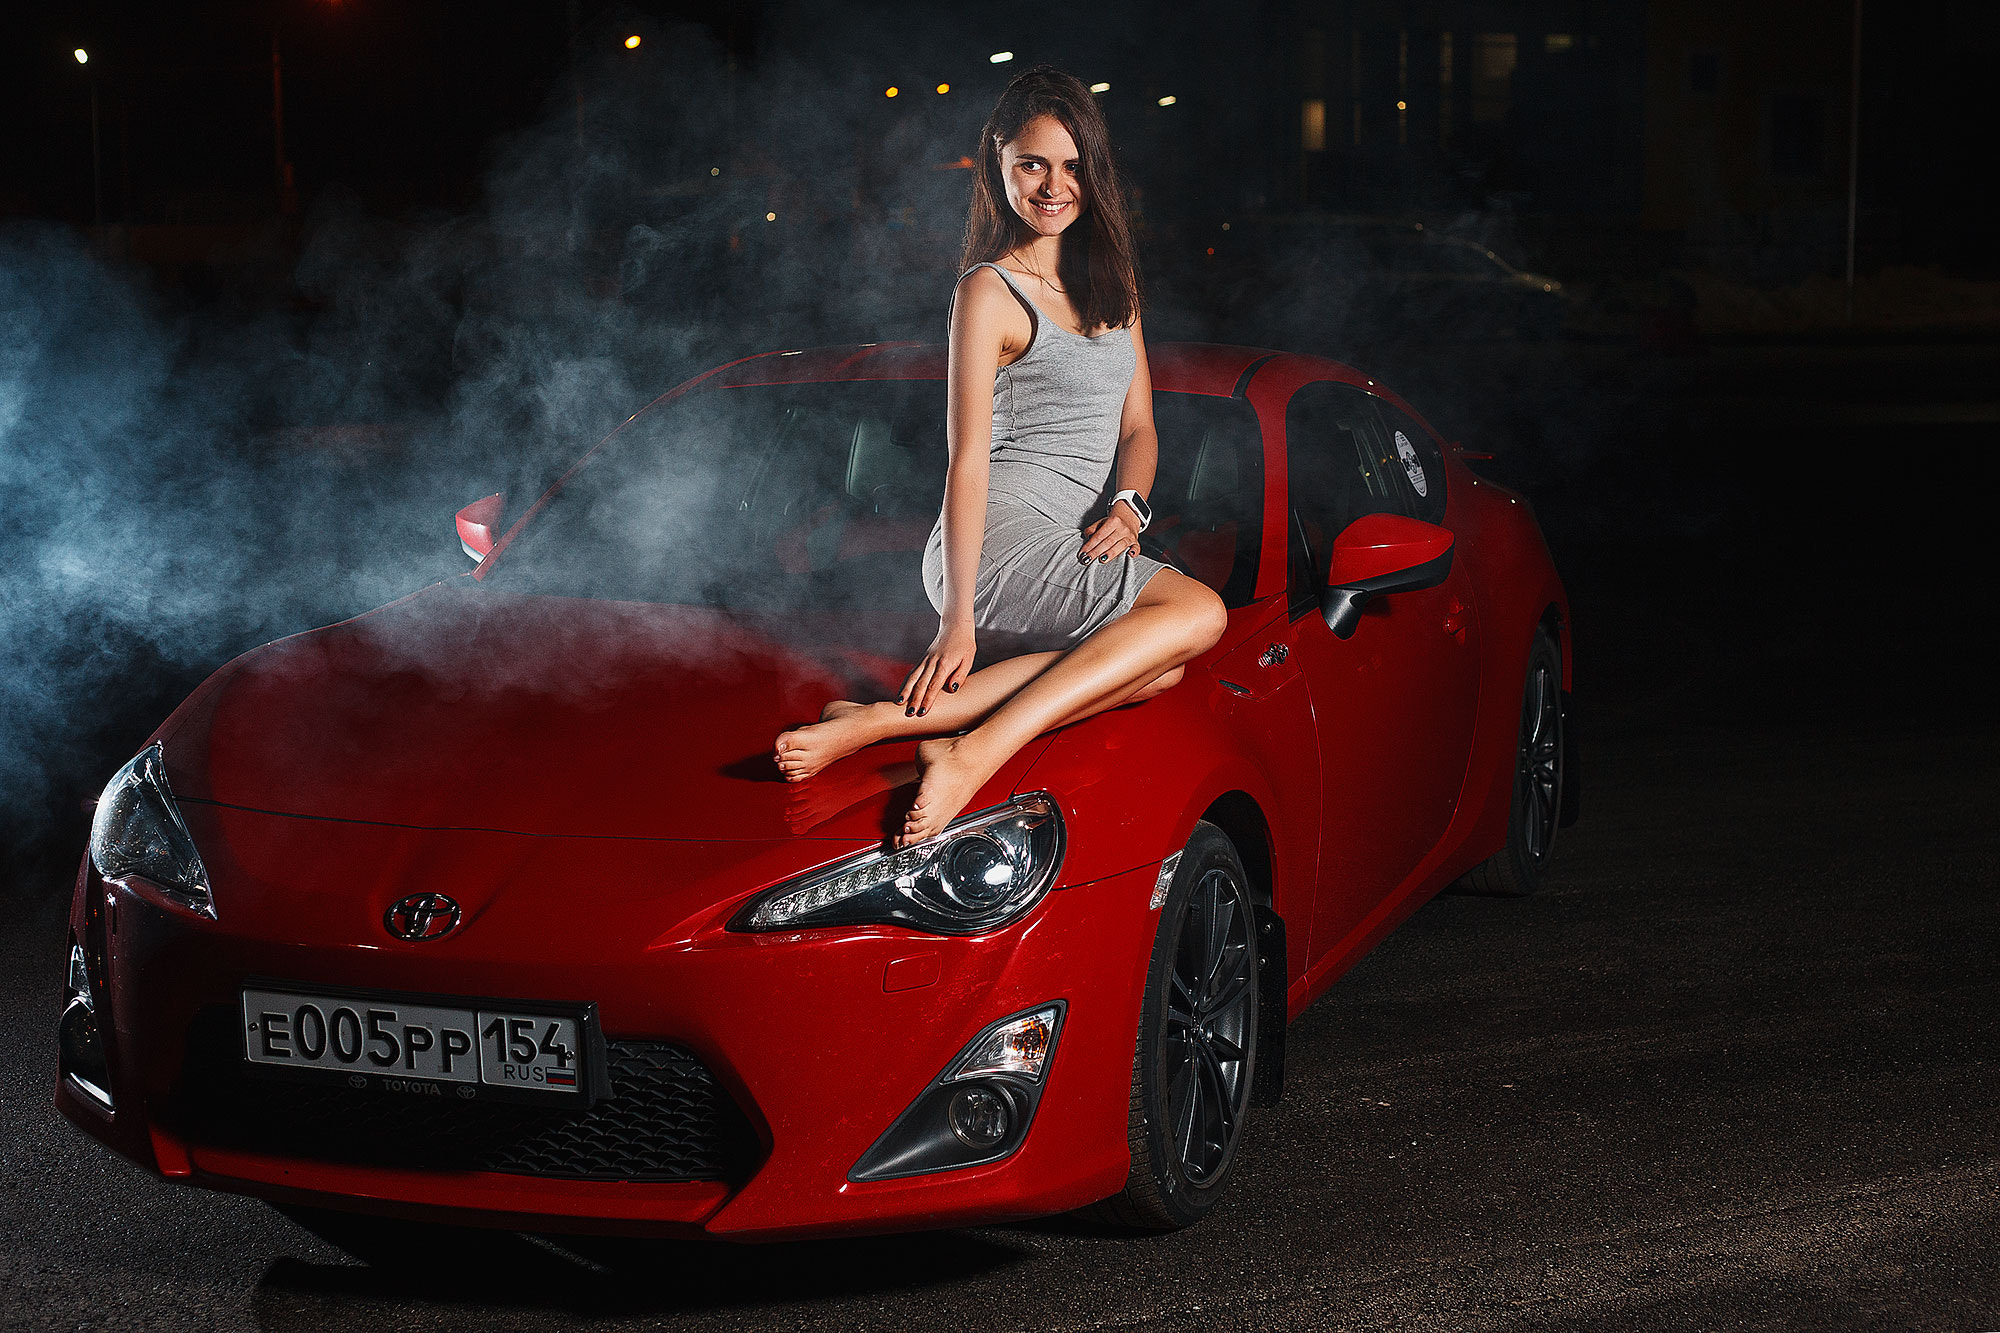 Free Wallpapers Cars And Beautiful Ladies Girls And Stunning Cars Hd Wallpapers 2019 All Hd Wallpapers